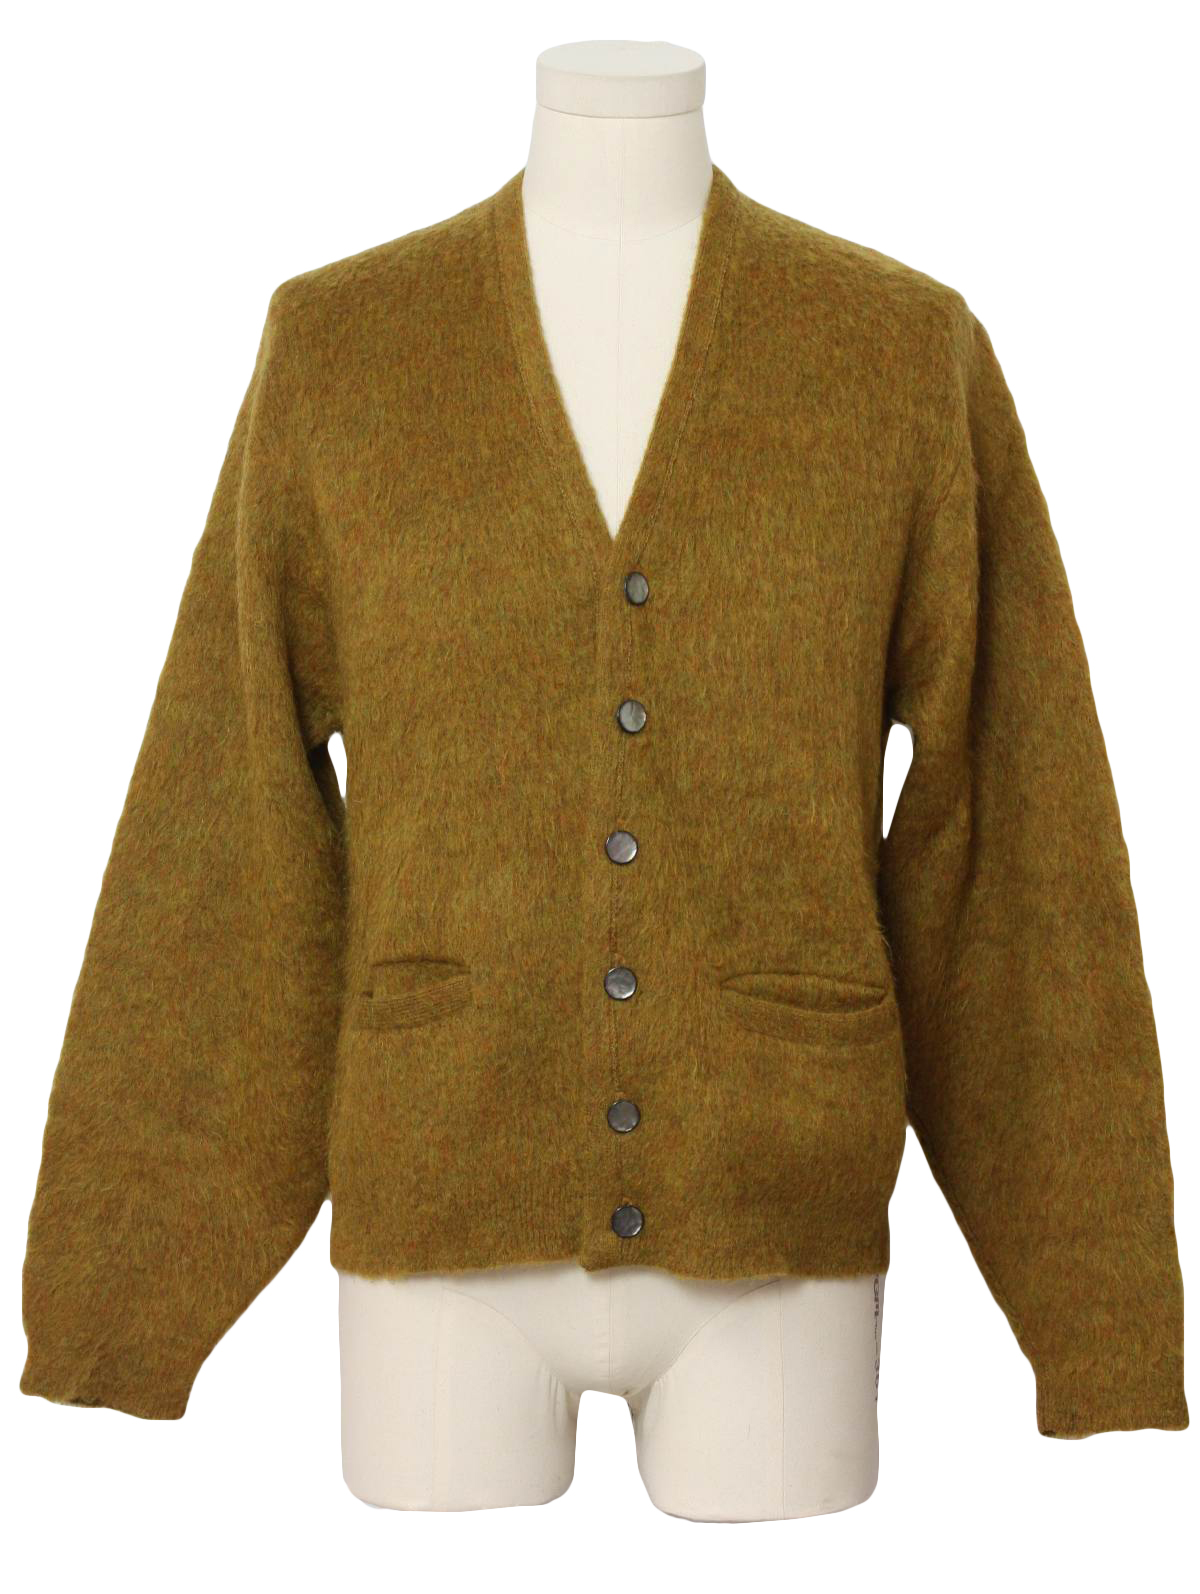 60's Vintage Caridgan Sweater: 60s -Campus- Mens olive green and ...